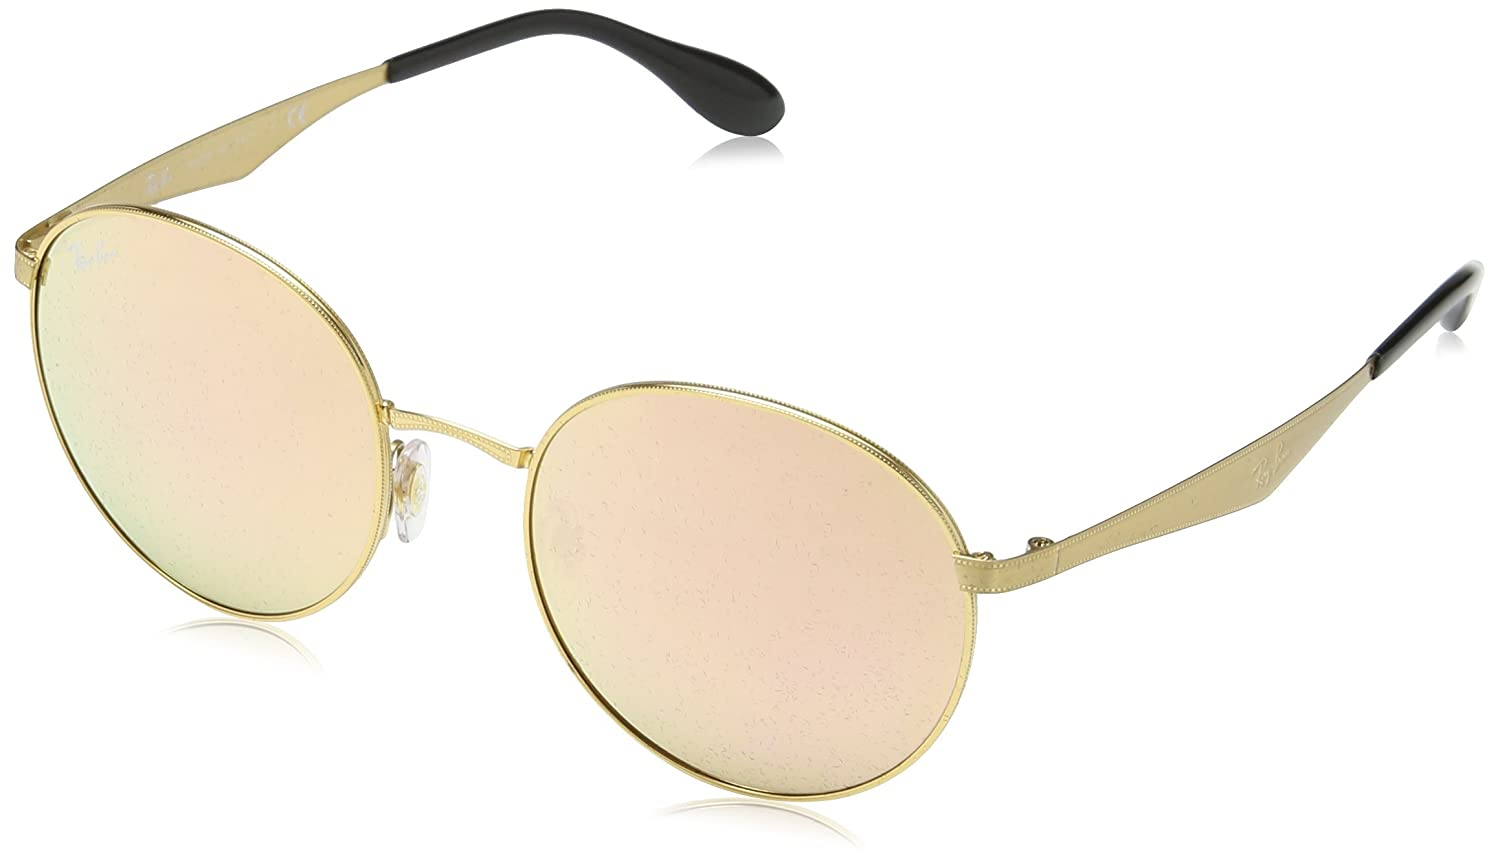 TALLA 51. Ray-Ban Sonnenbrille (RB 3537)